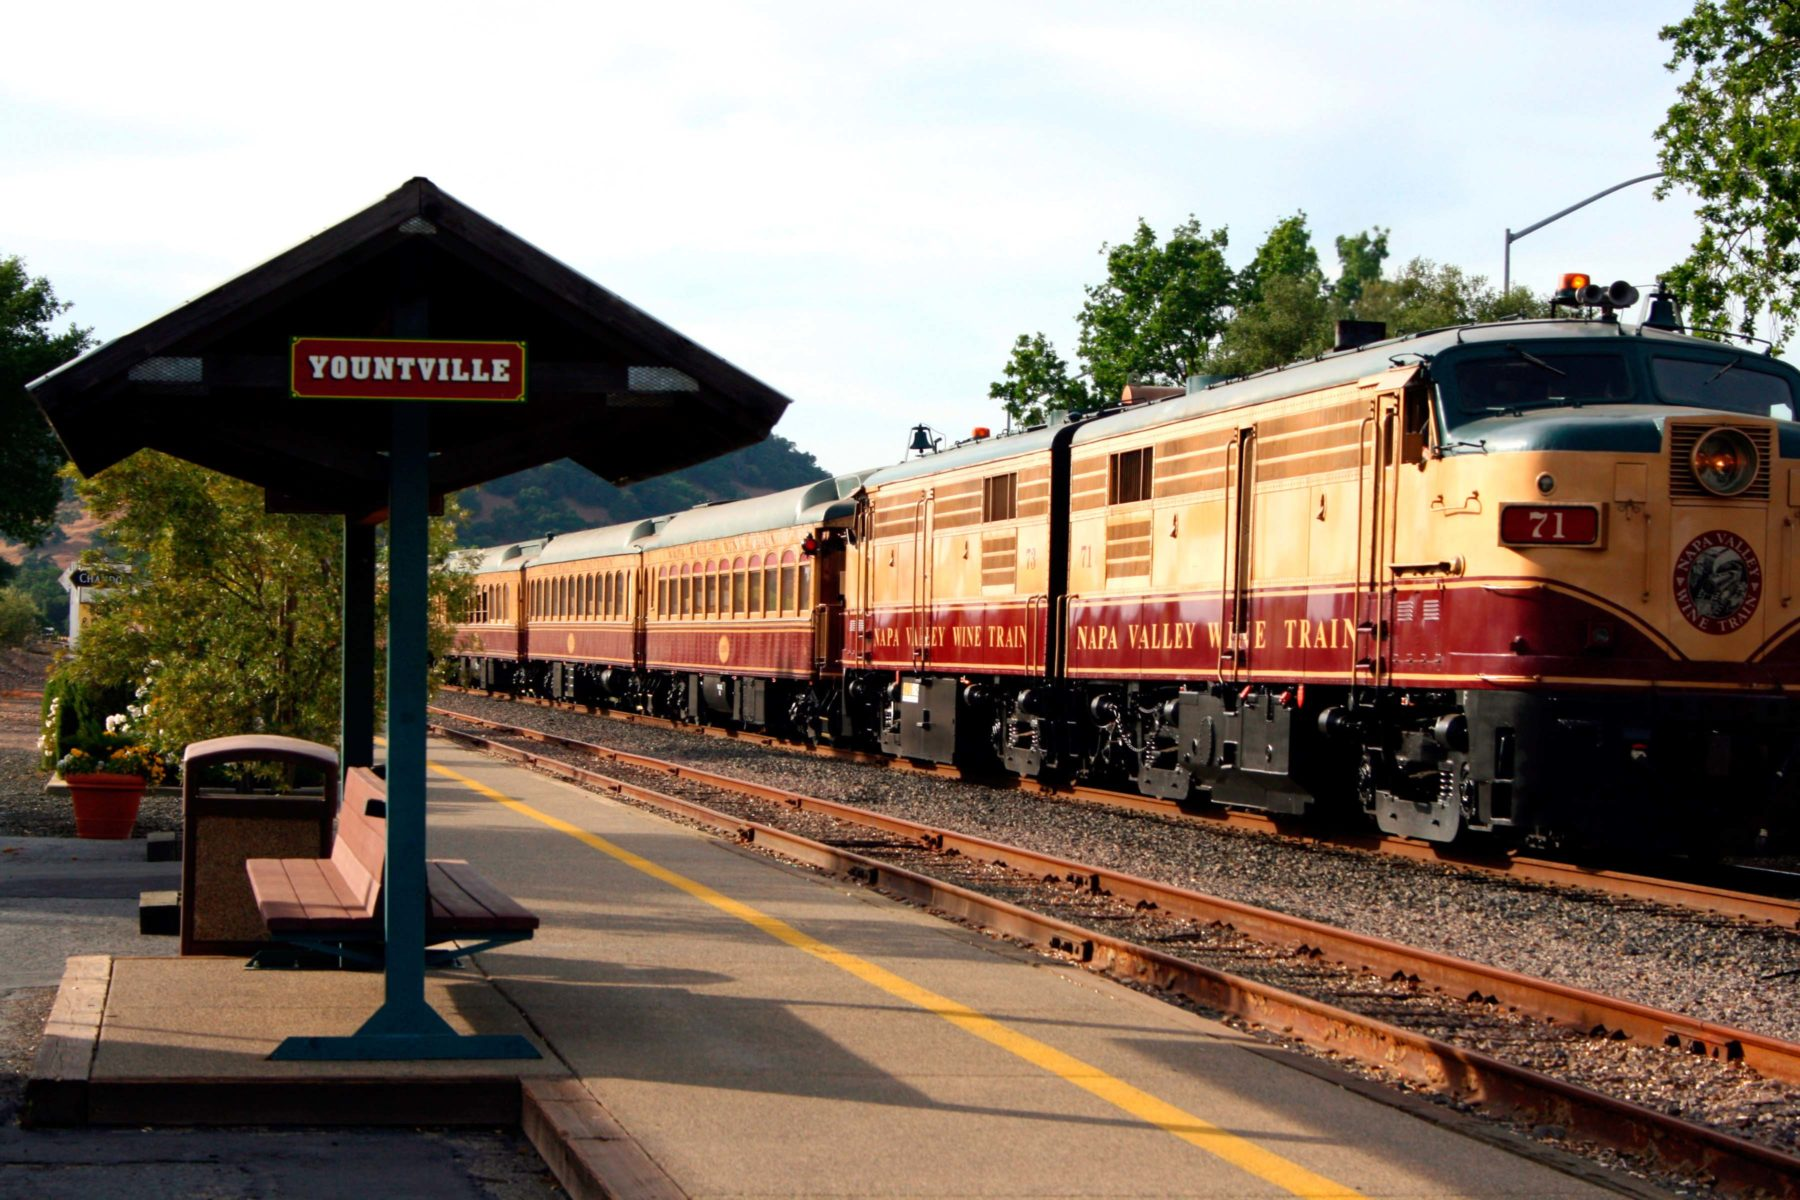 Tips for Riding the Napa Valley Wine Train